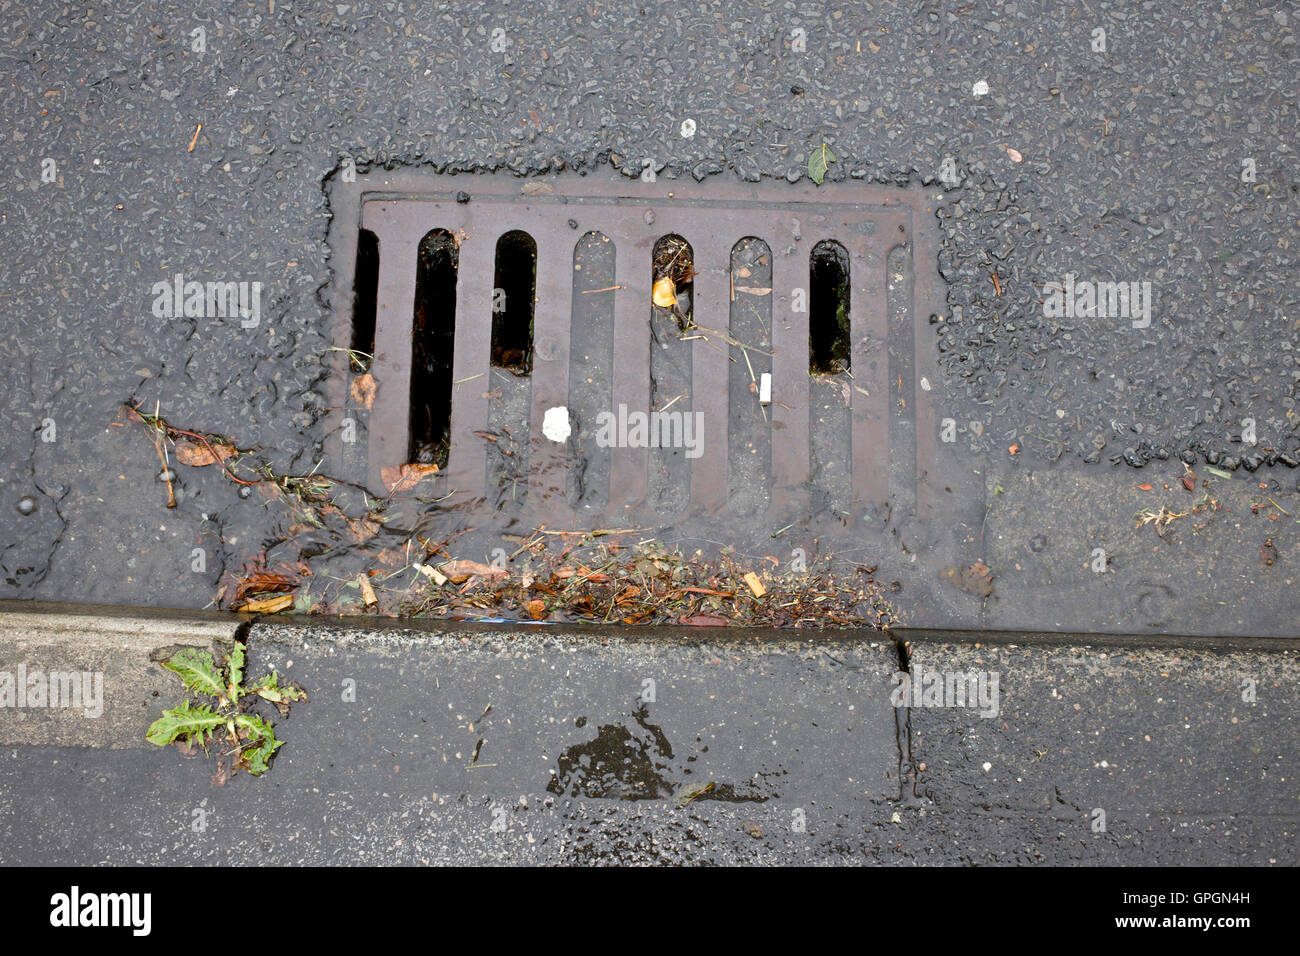 Drains blocked by leaves and mud and not cleaned out - Stock Image